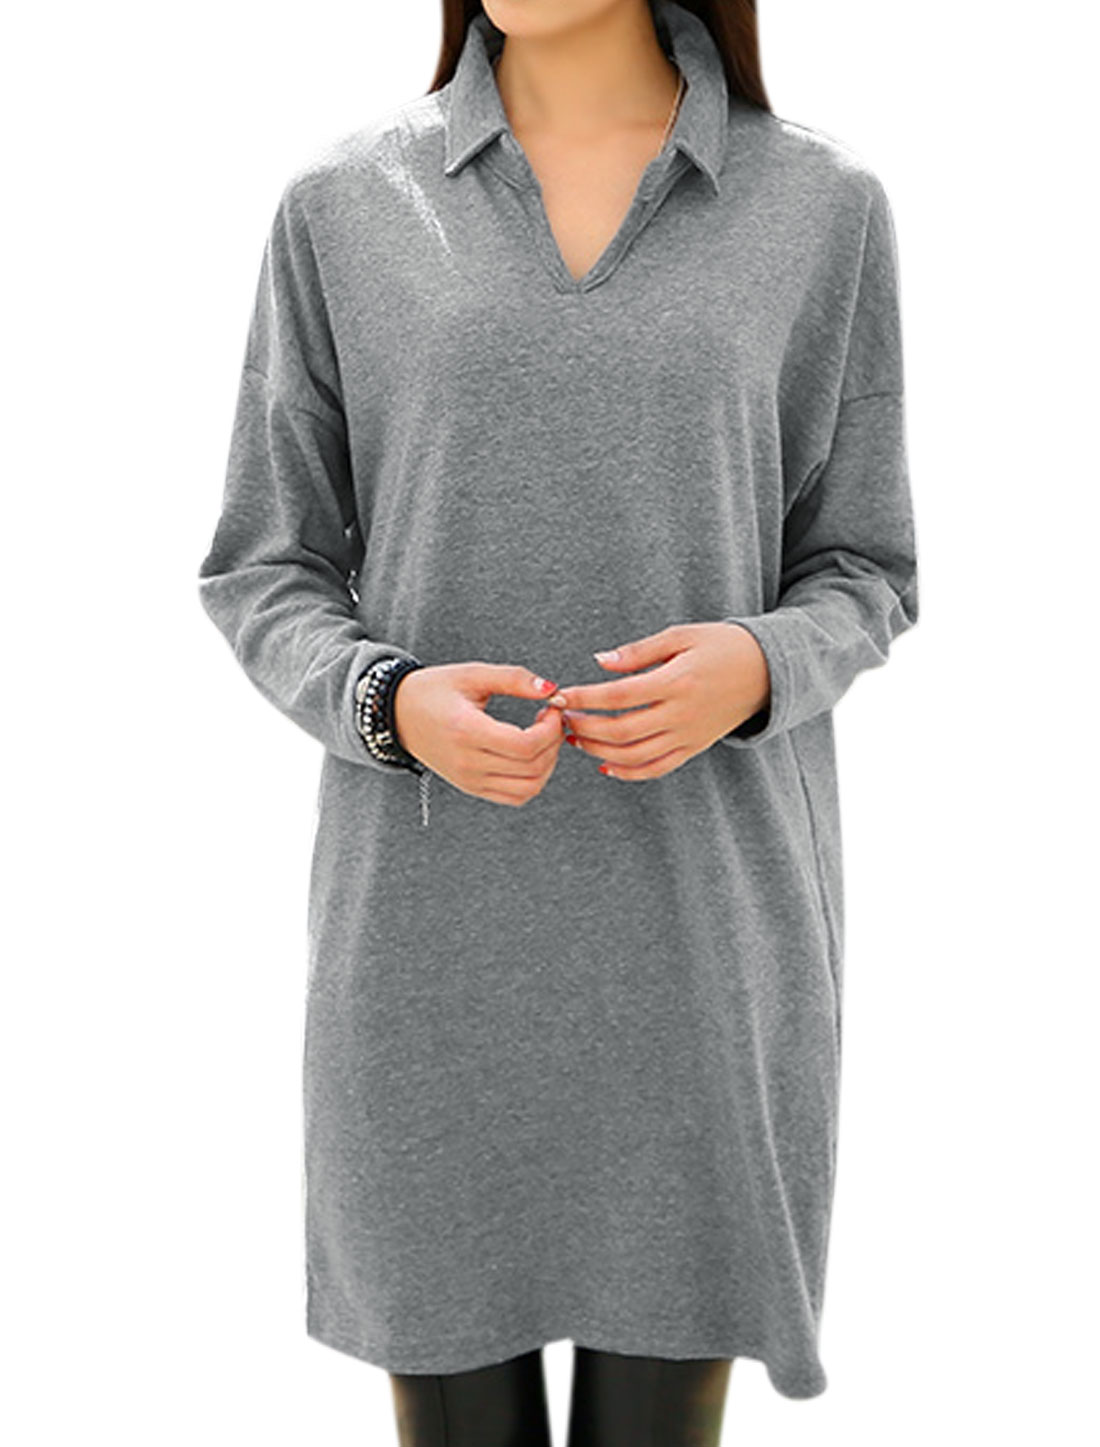 Women Turn Down Collar Long Batwing Sleeves Loose Fit Casual Tunic Dress Gray M